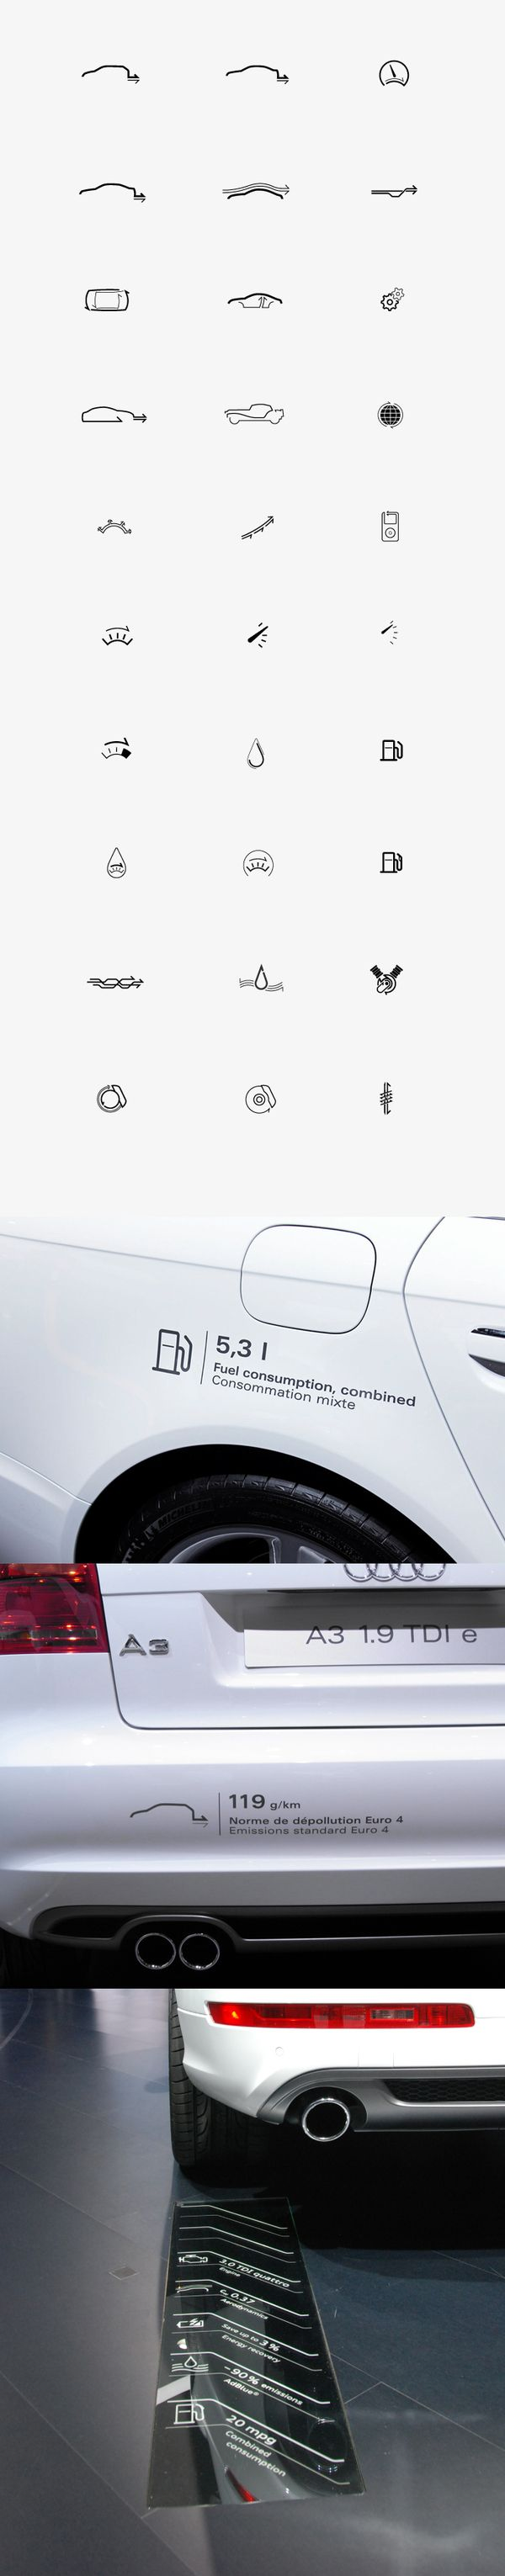 Audi Iconset by Malte Schweers, via Behance